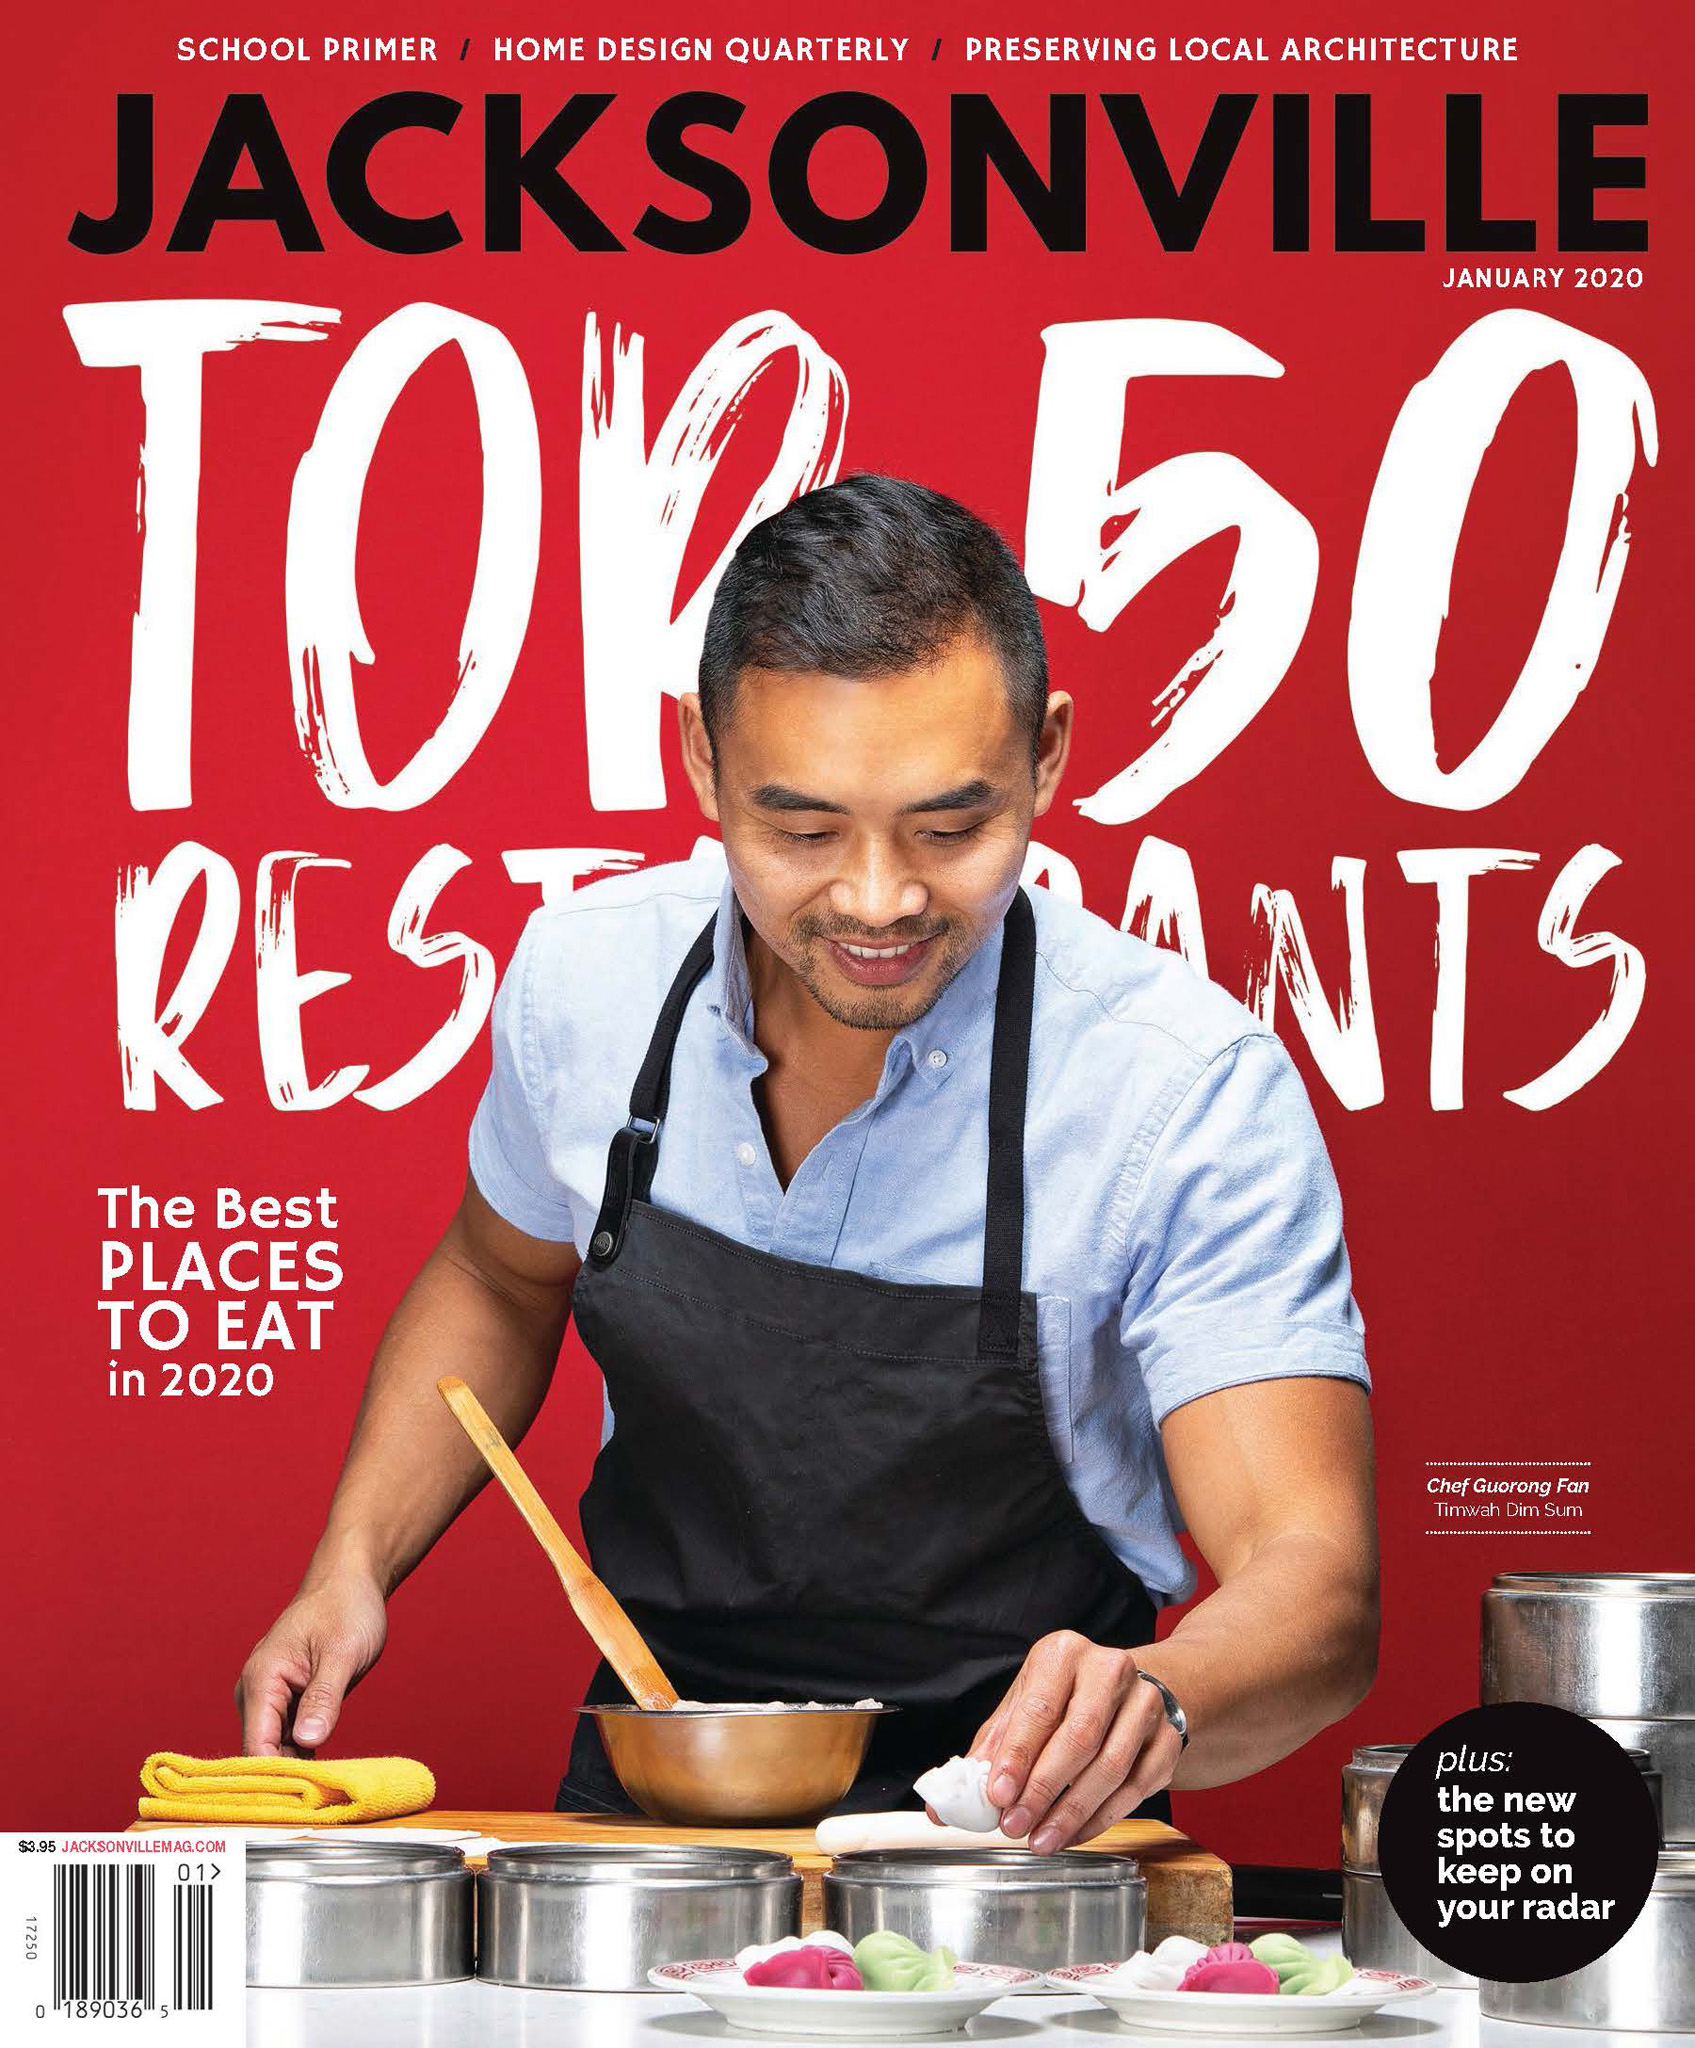 Jacksonville-Magazine-Cover-Fan